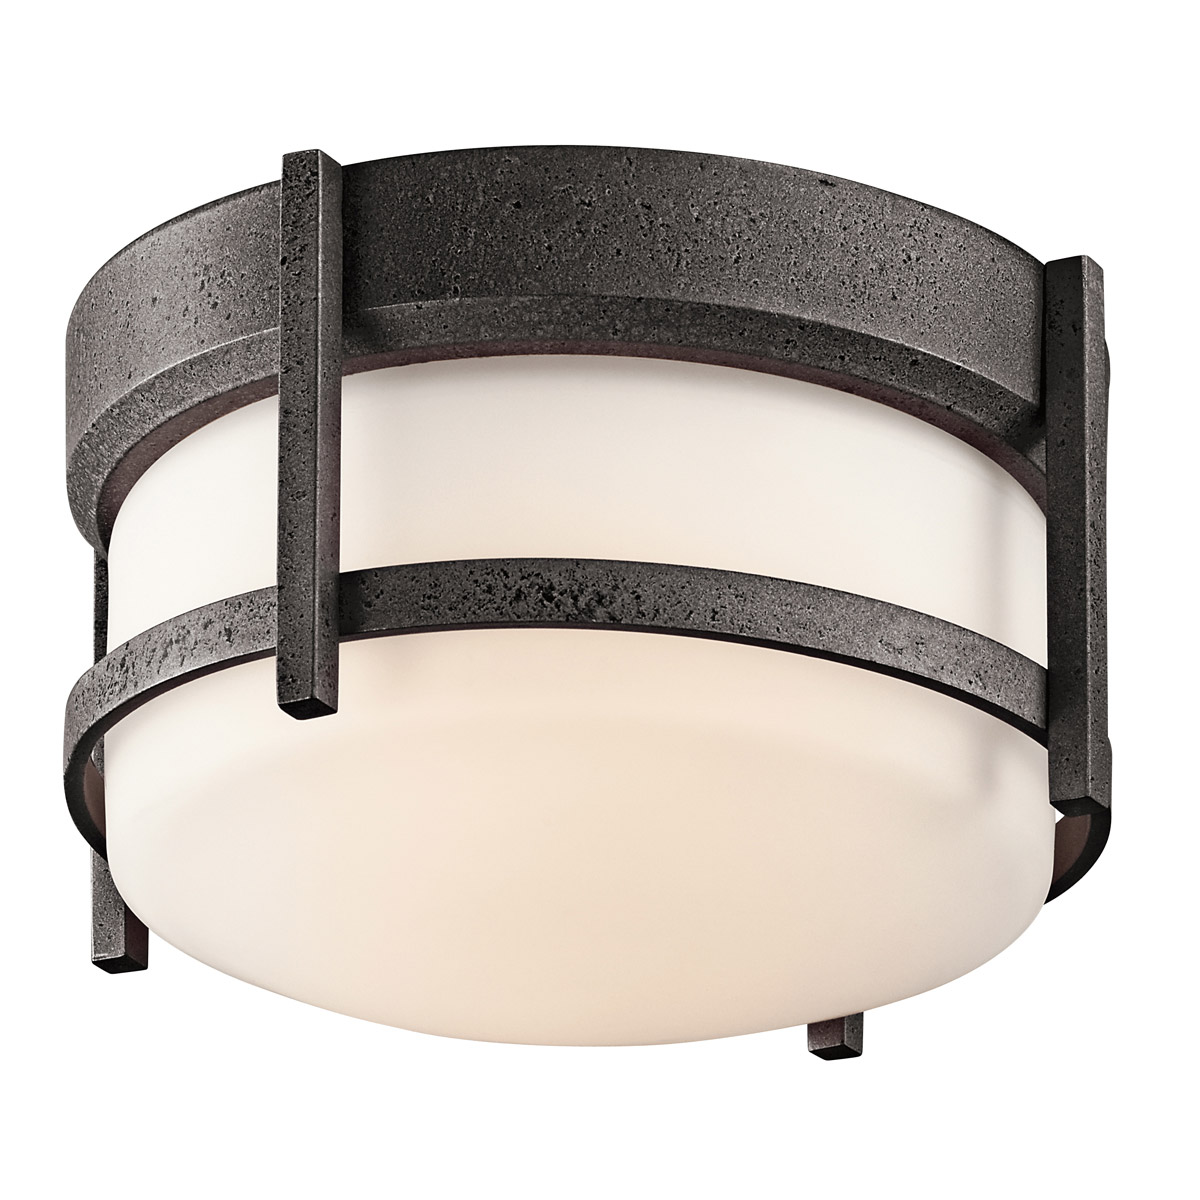 Kichler 49125AVI Camden Outdoor Flush Mount Ceiling Fixture